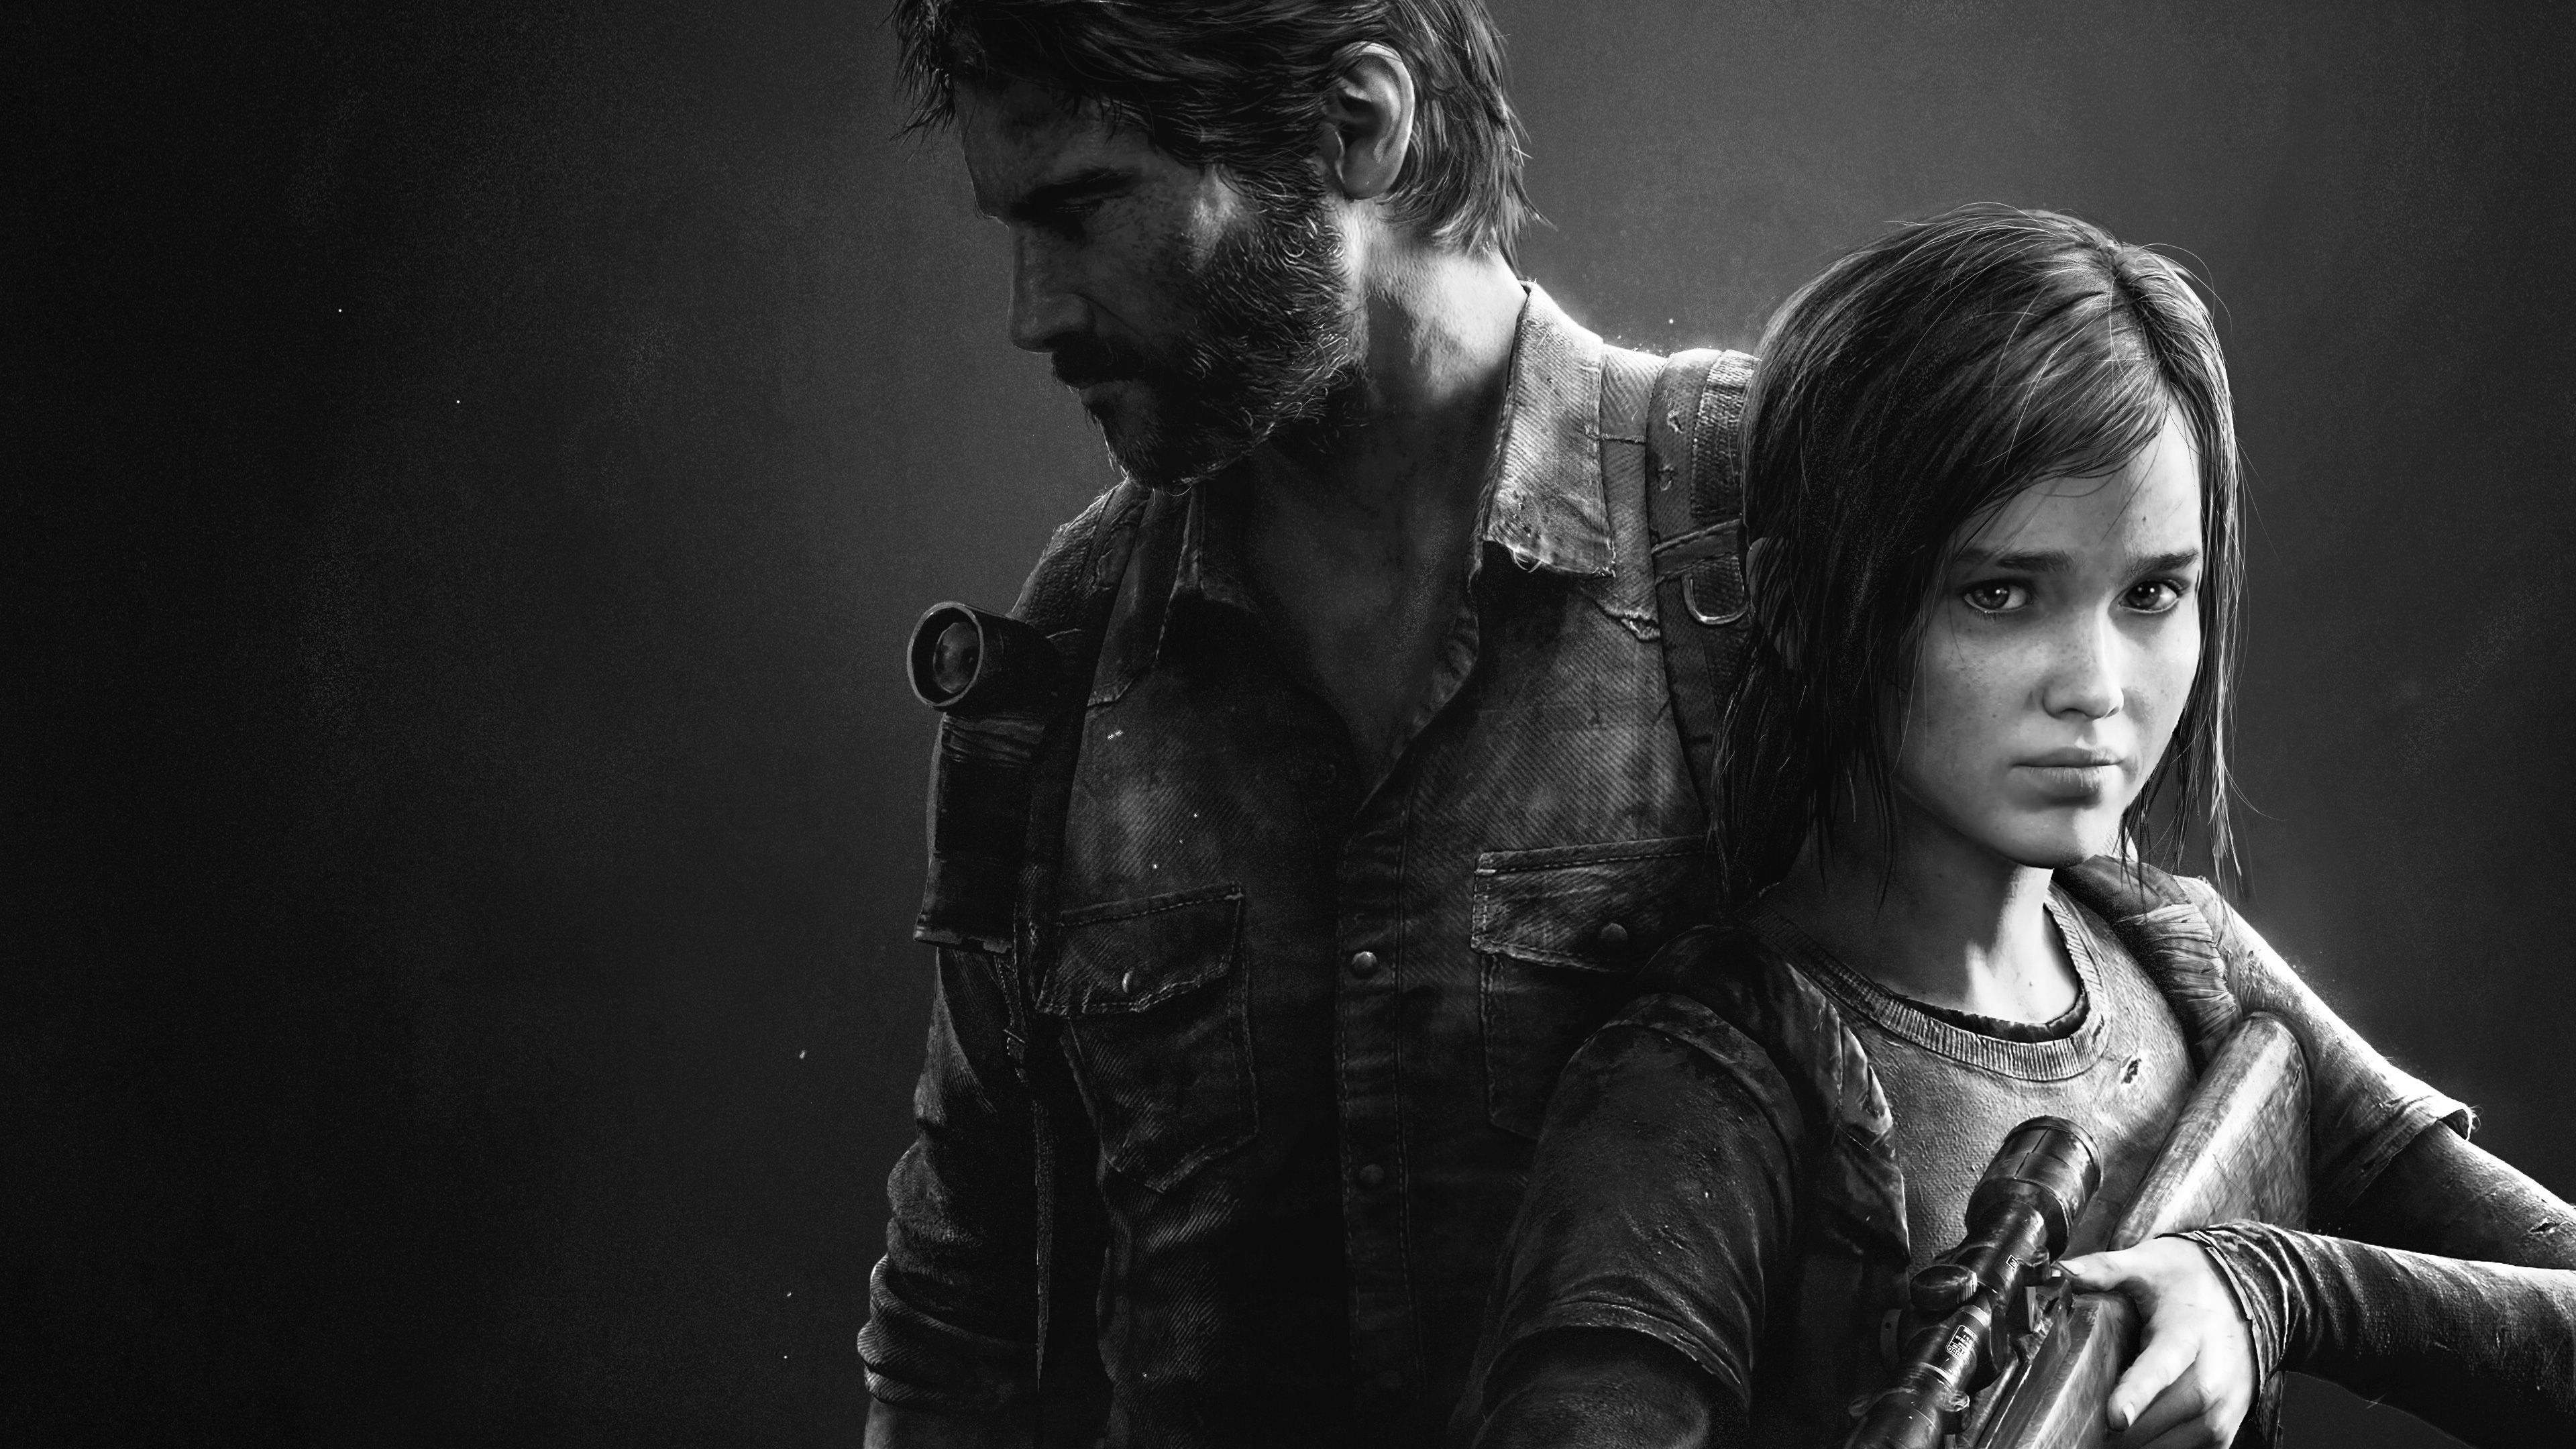 The Last Of Us 2 Wallpapers Top Free The Last Of Us 2 Backgrounds Wallpaperaccess